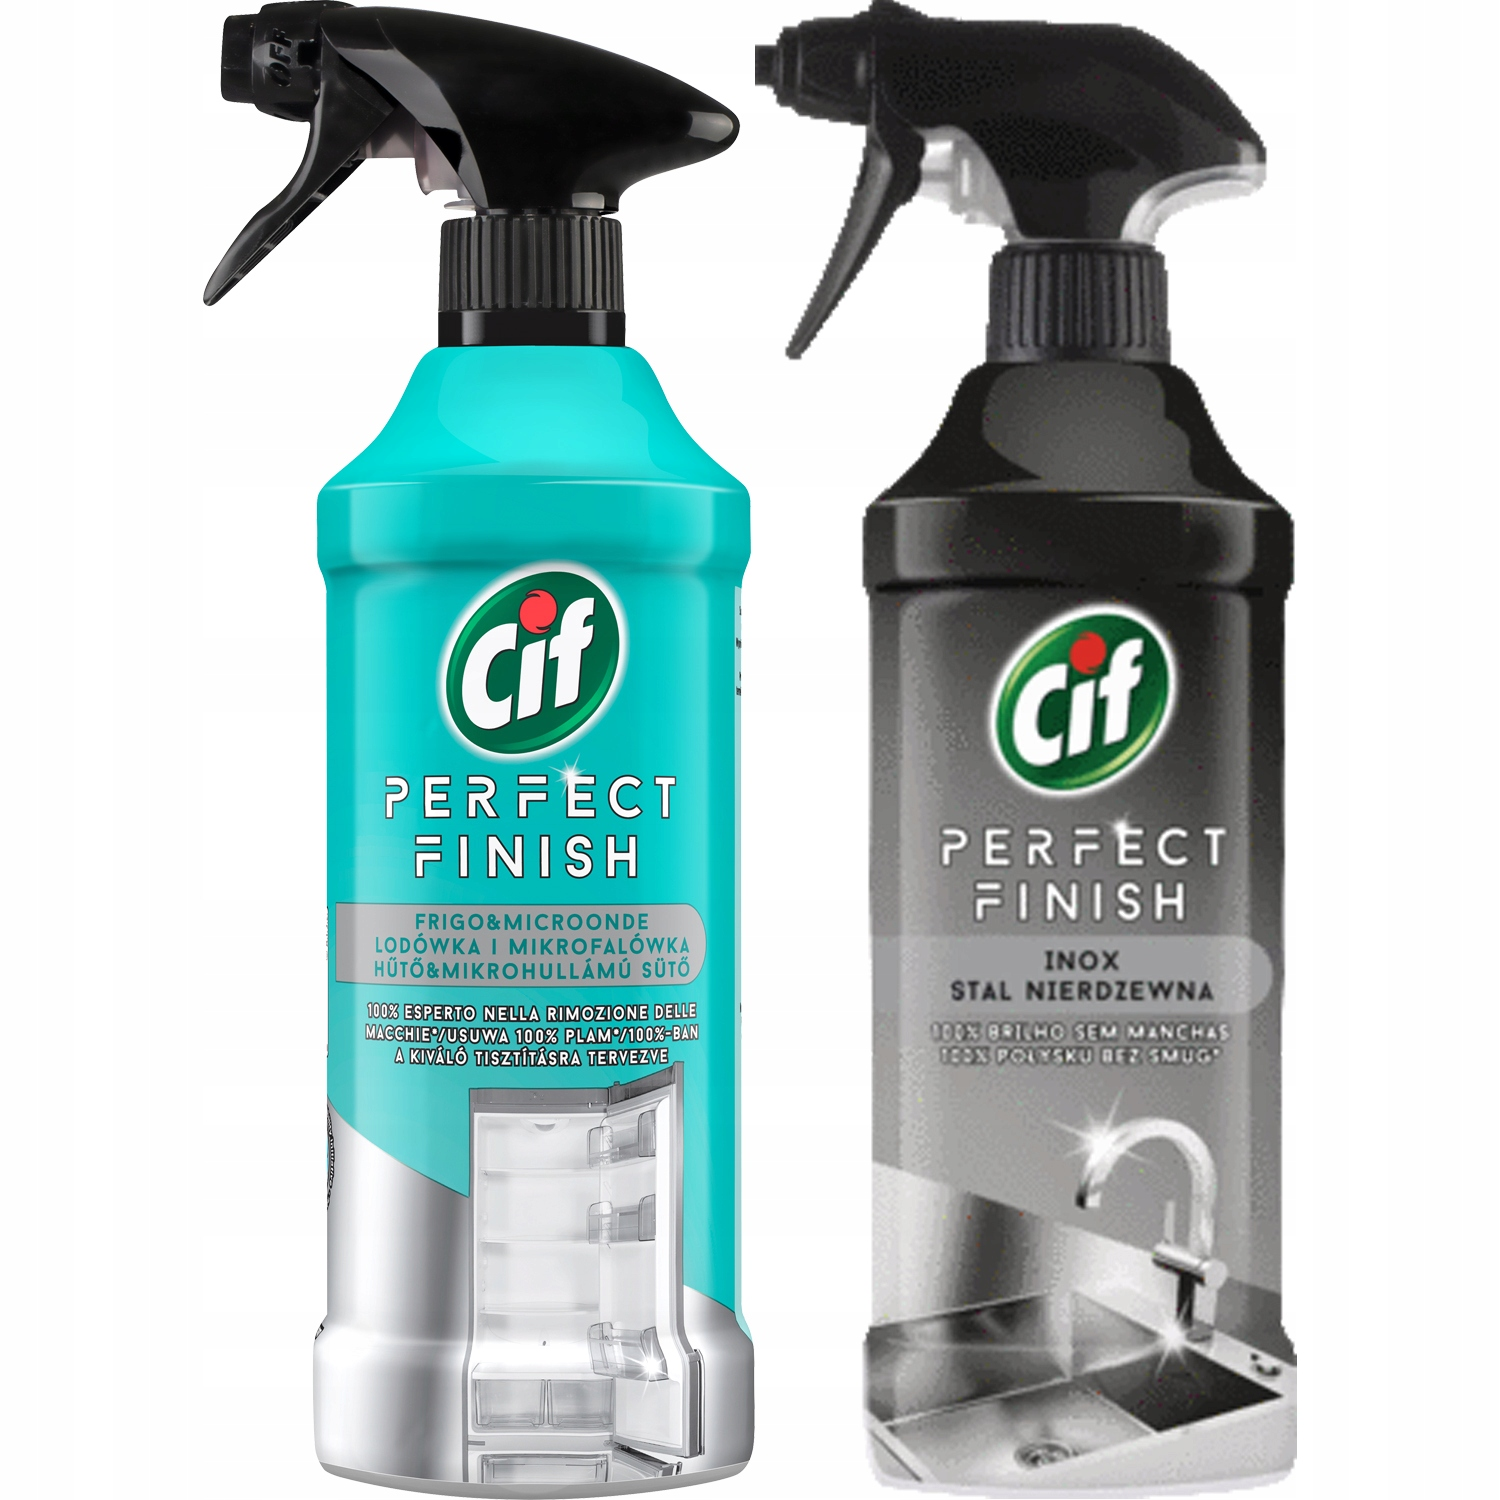 Cif Perfect Finish Spray Холодильник Сталь 2x435ml